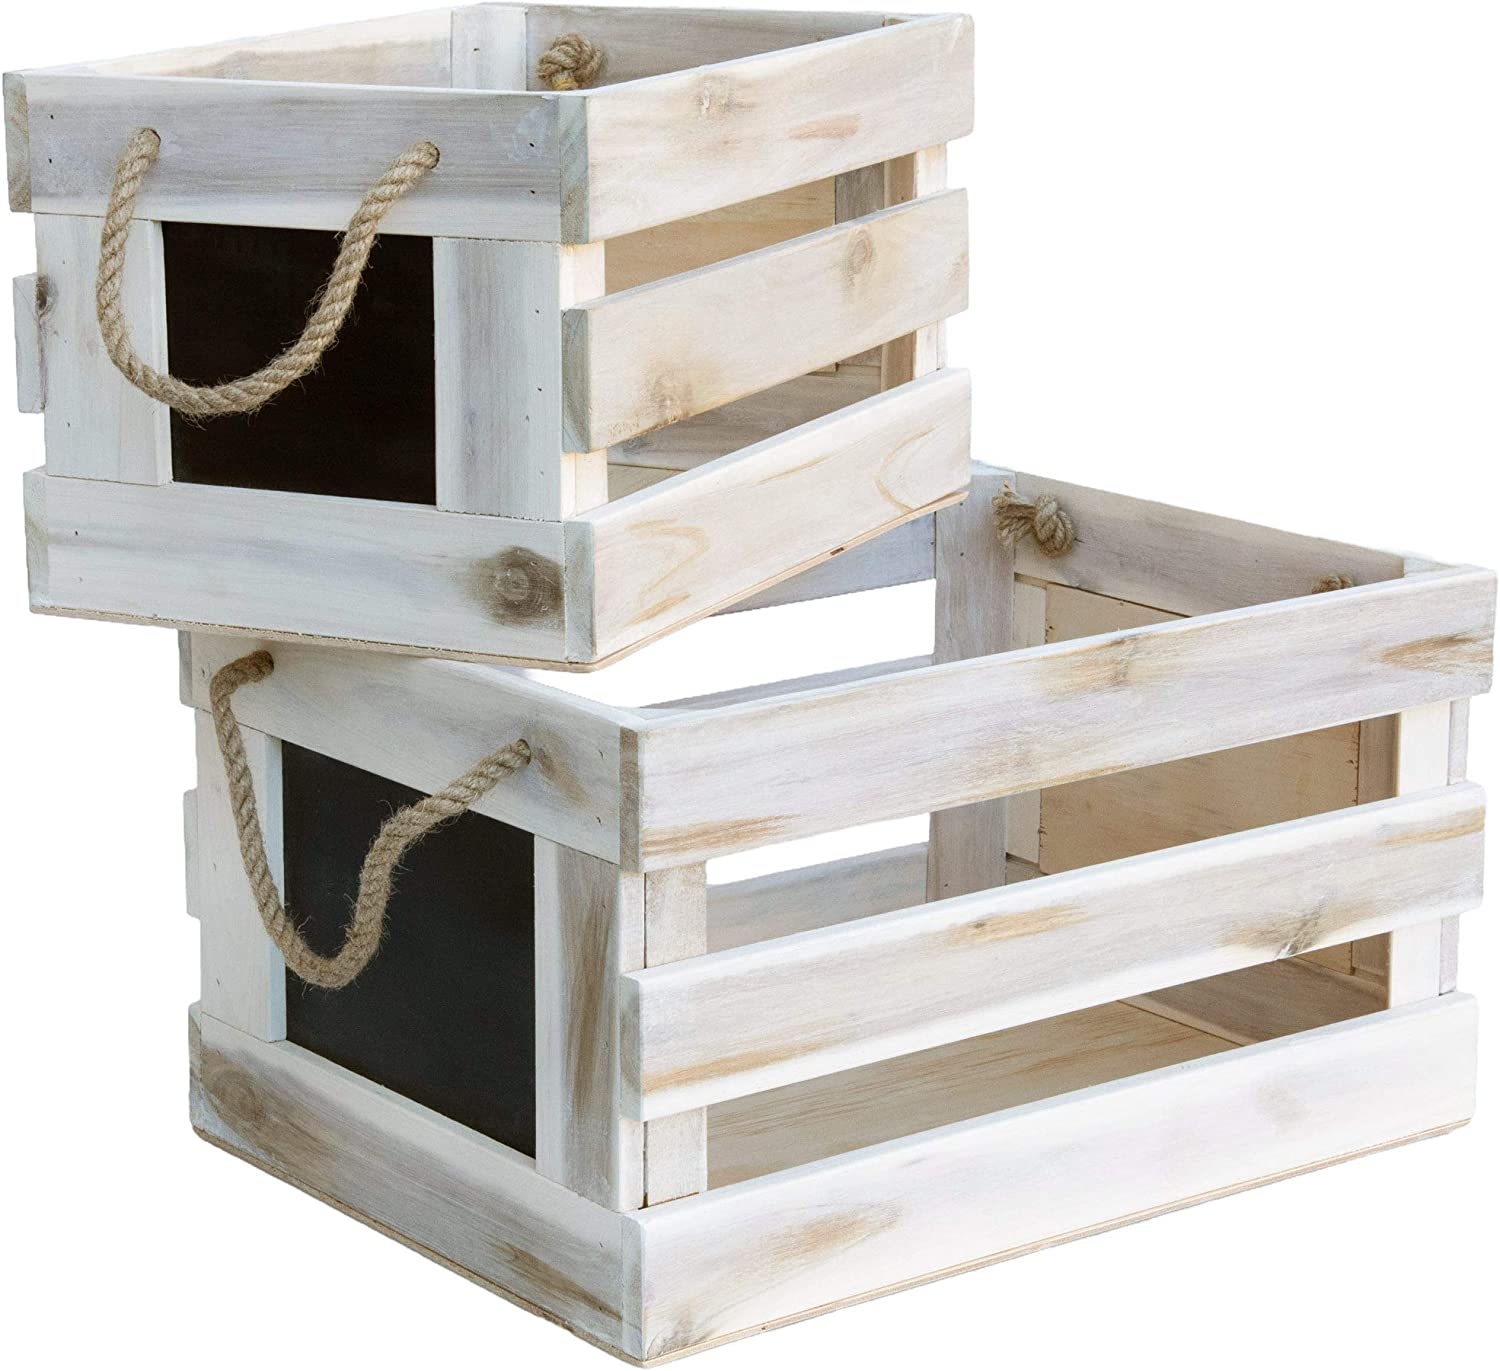 Modern Village White Wooden Crates Chalk Fac Set Decorative Many security popular brands with